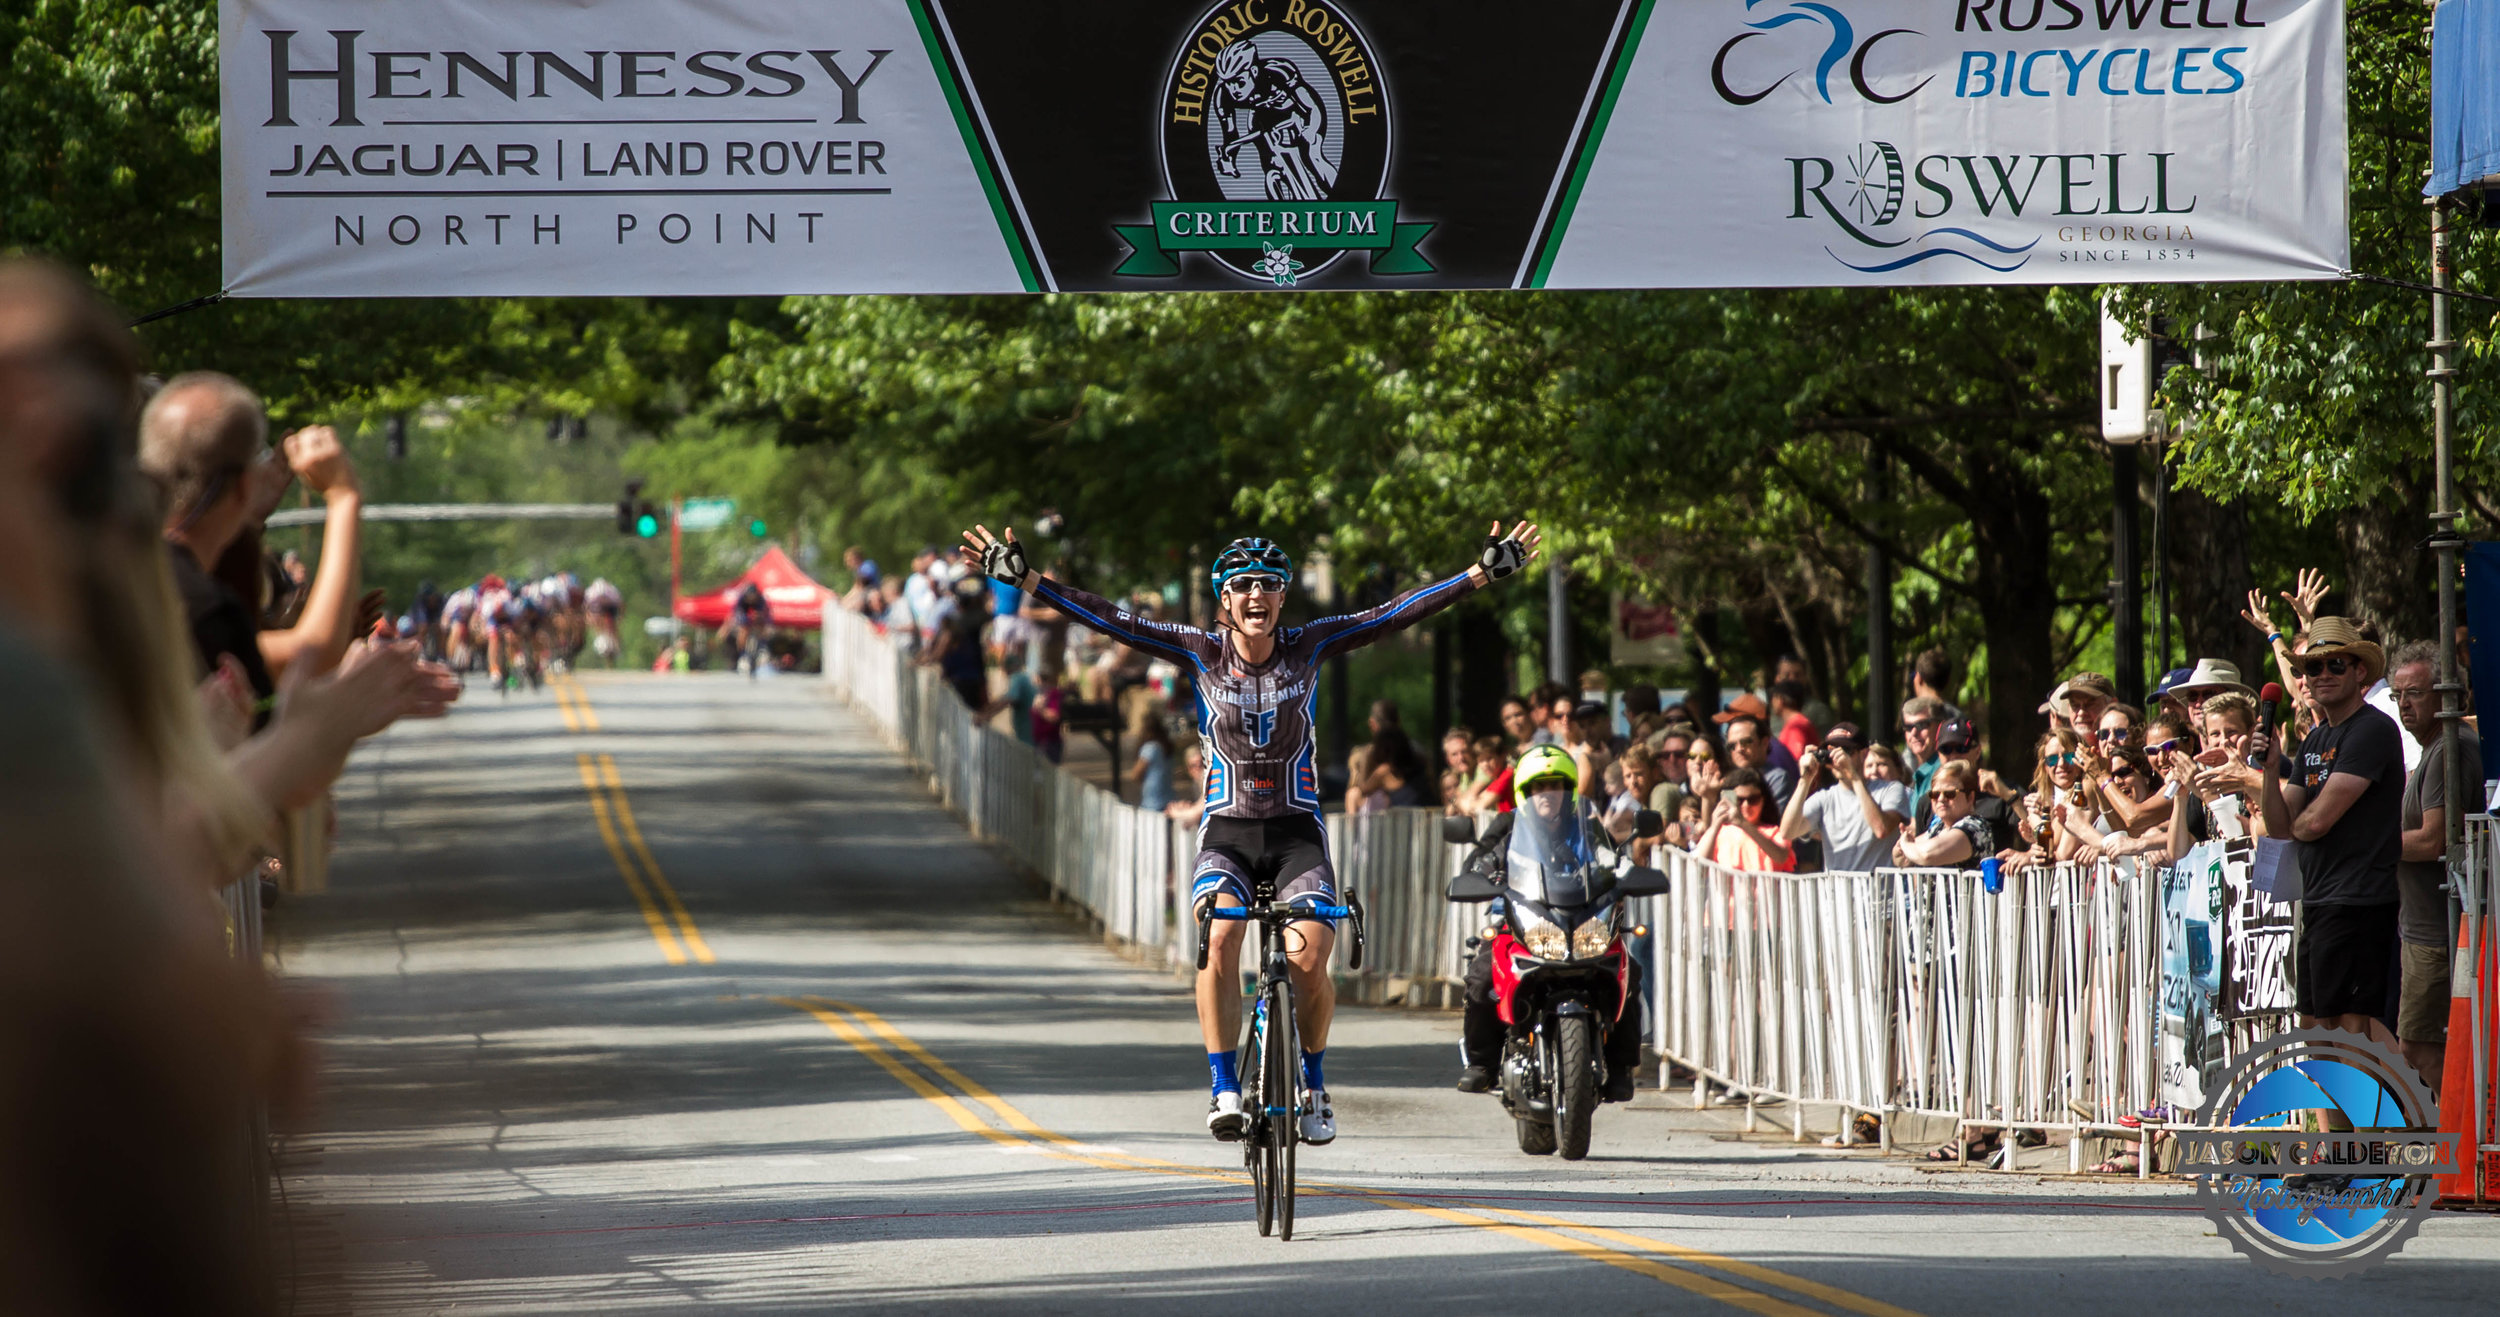 2017 USA Crits Speed Week - Roswell